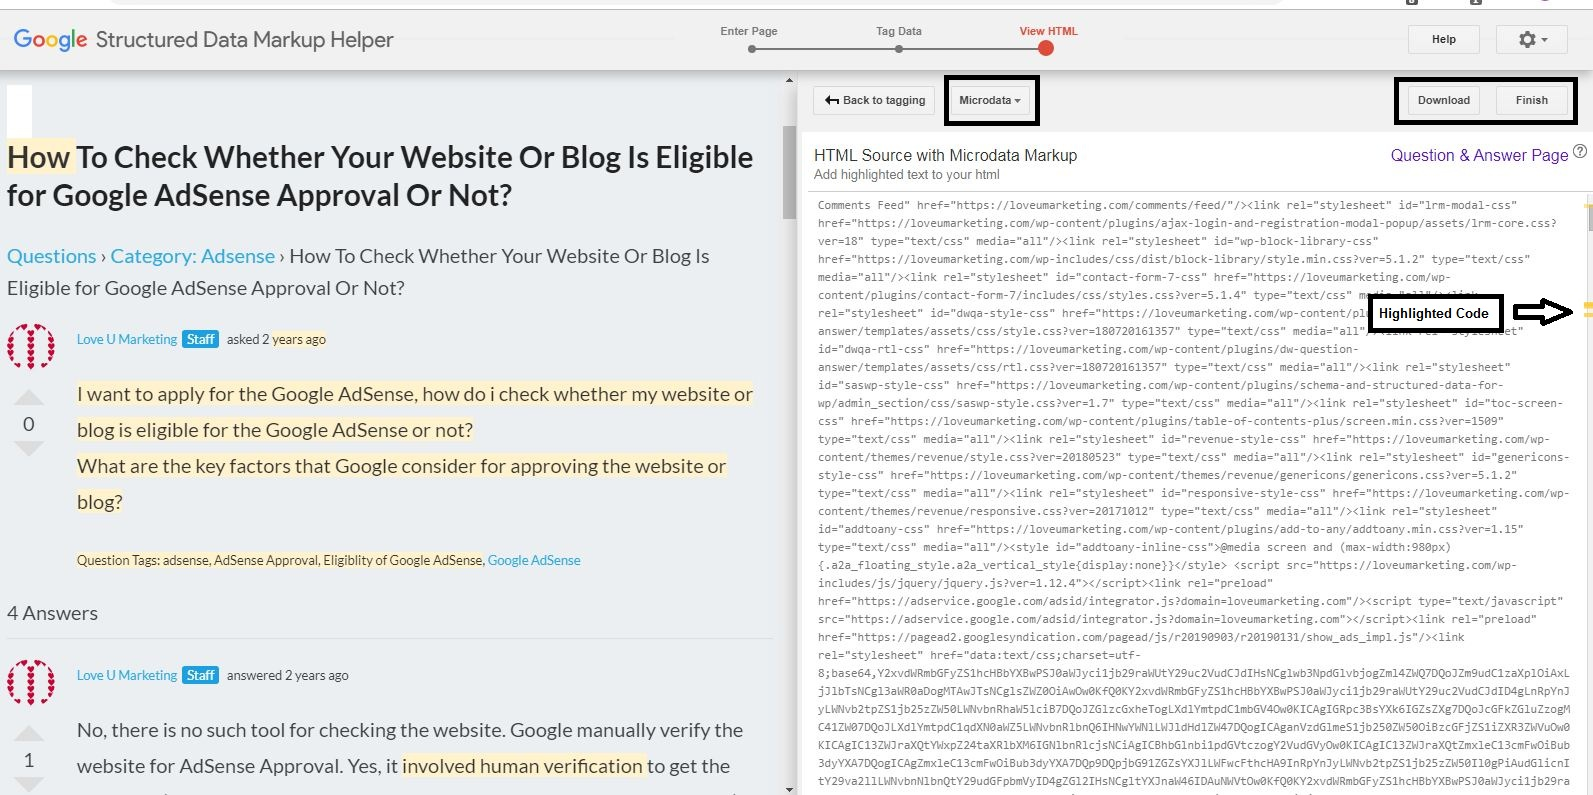 Create HTML page for Micro Data Markup Code